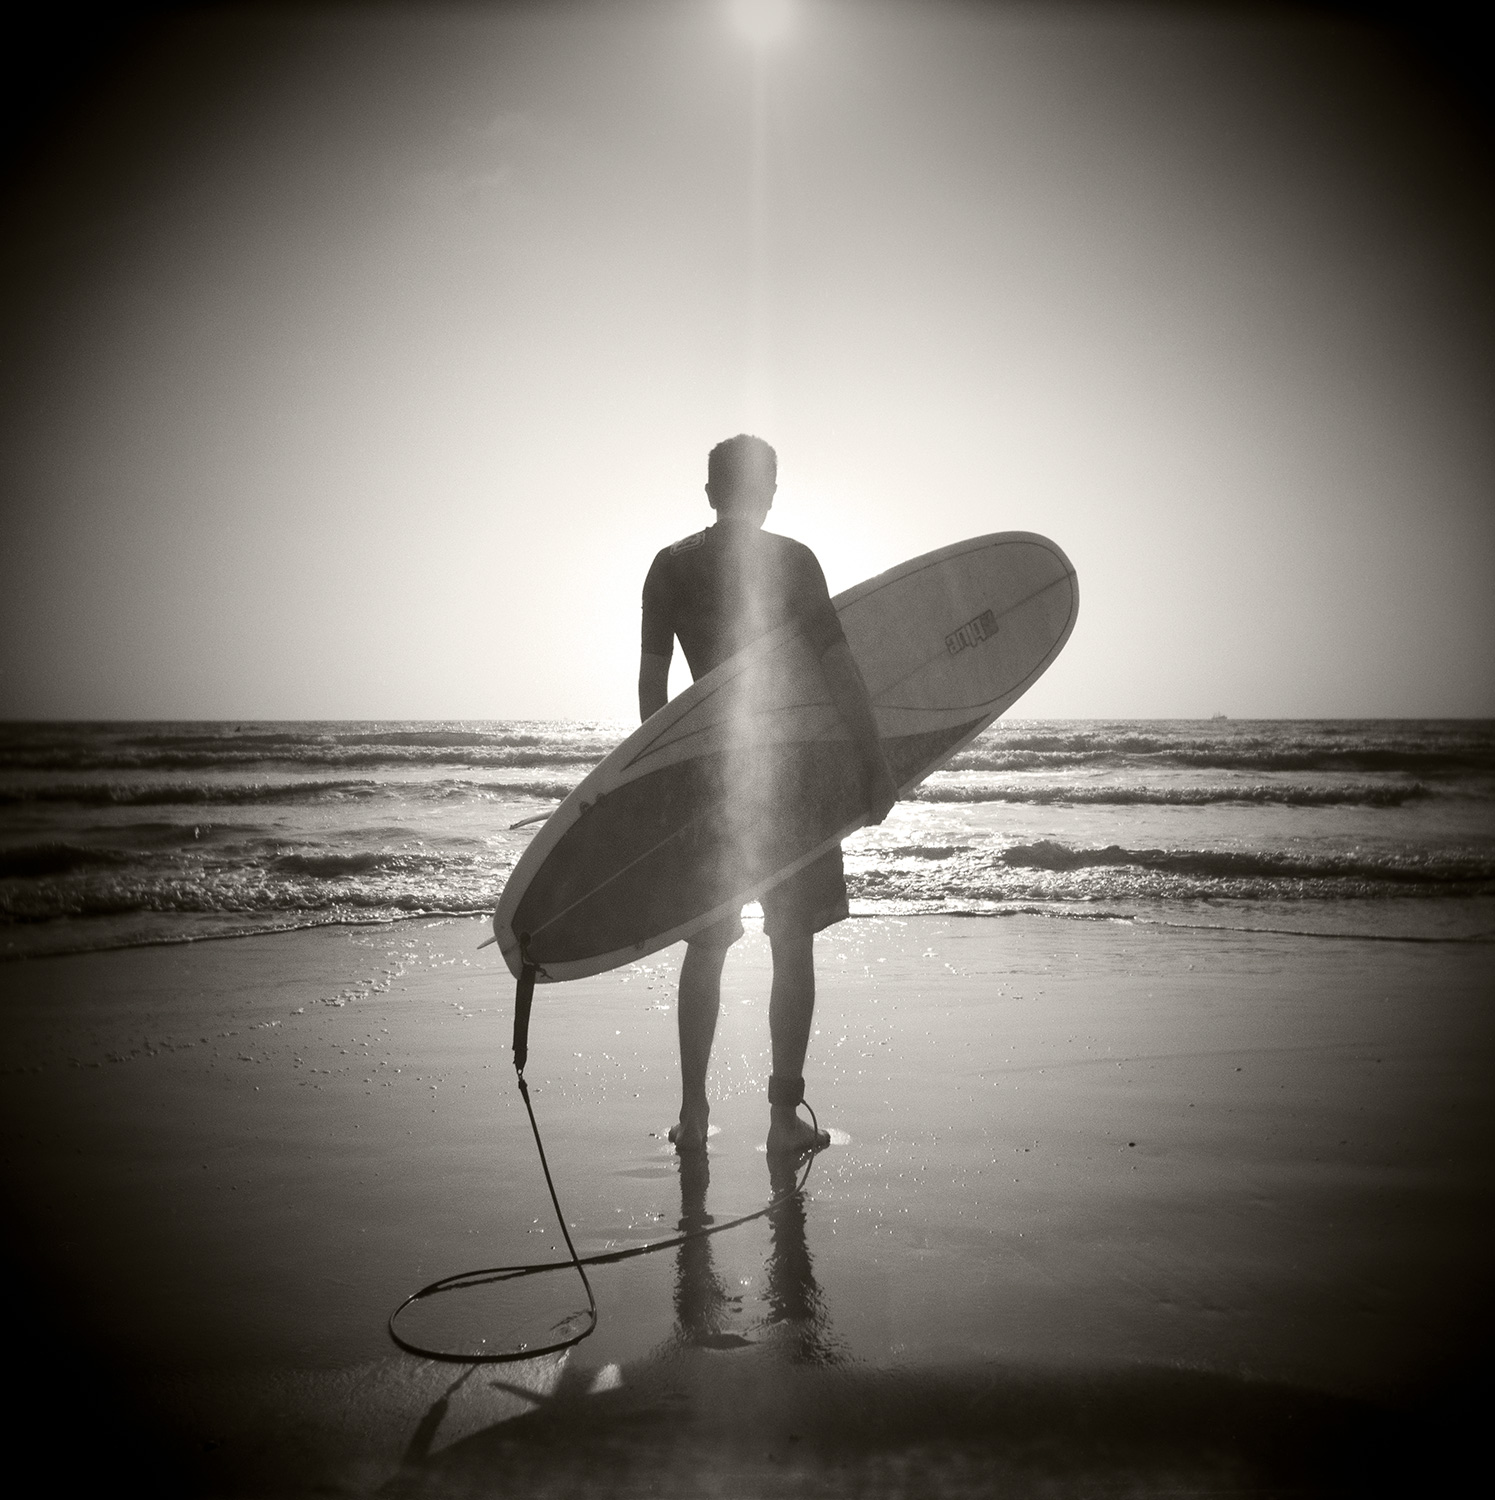 Lone Surfer holding surfboard